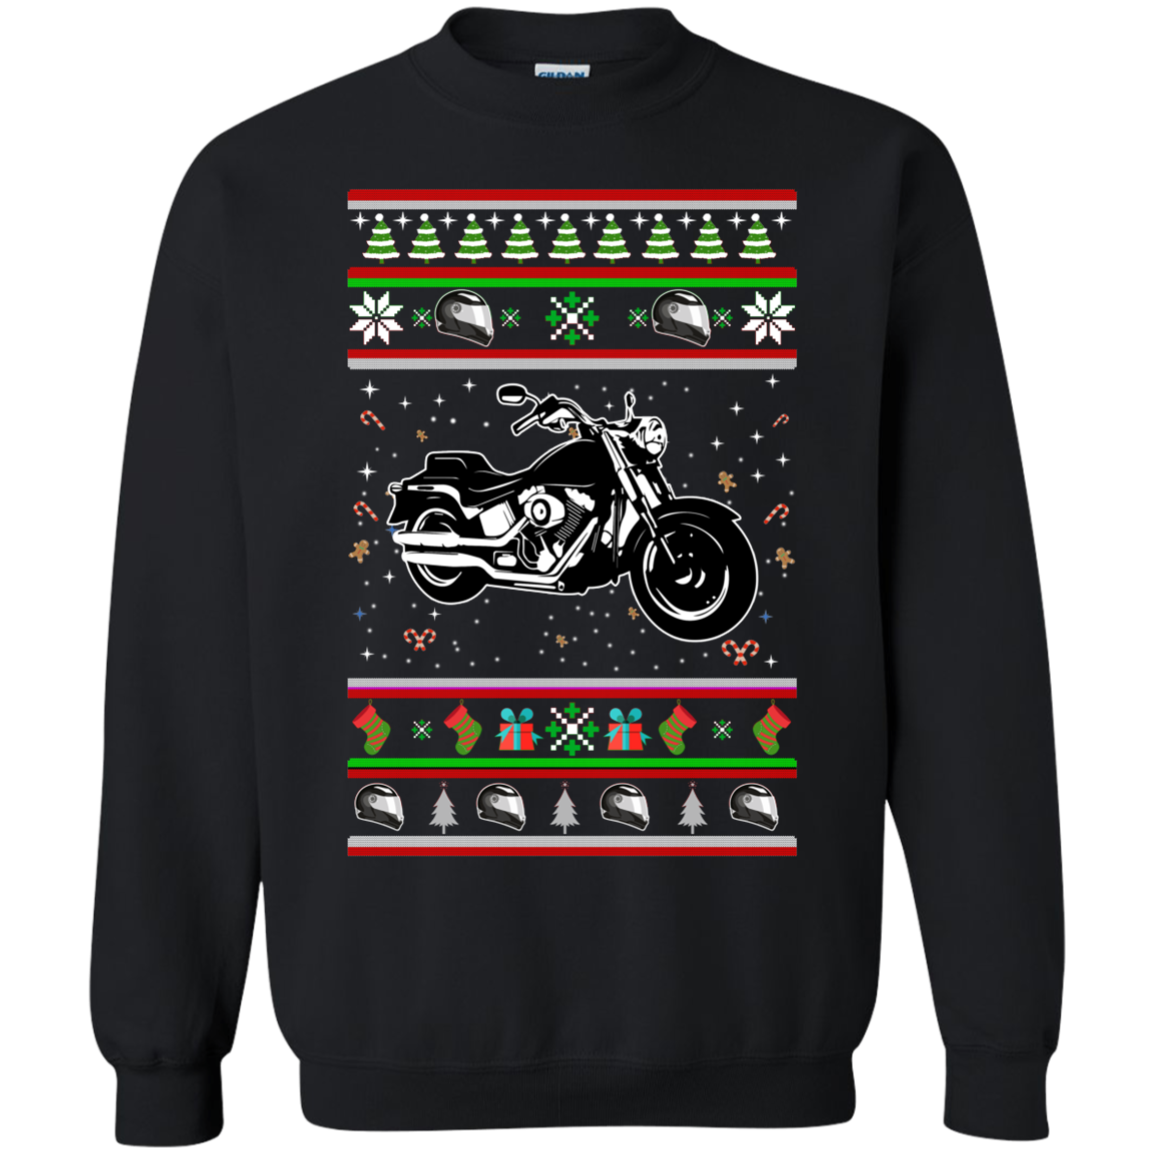 Ghim trên Ugly Christmas Sweaters Funny Xmas Sweaters for